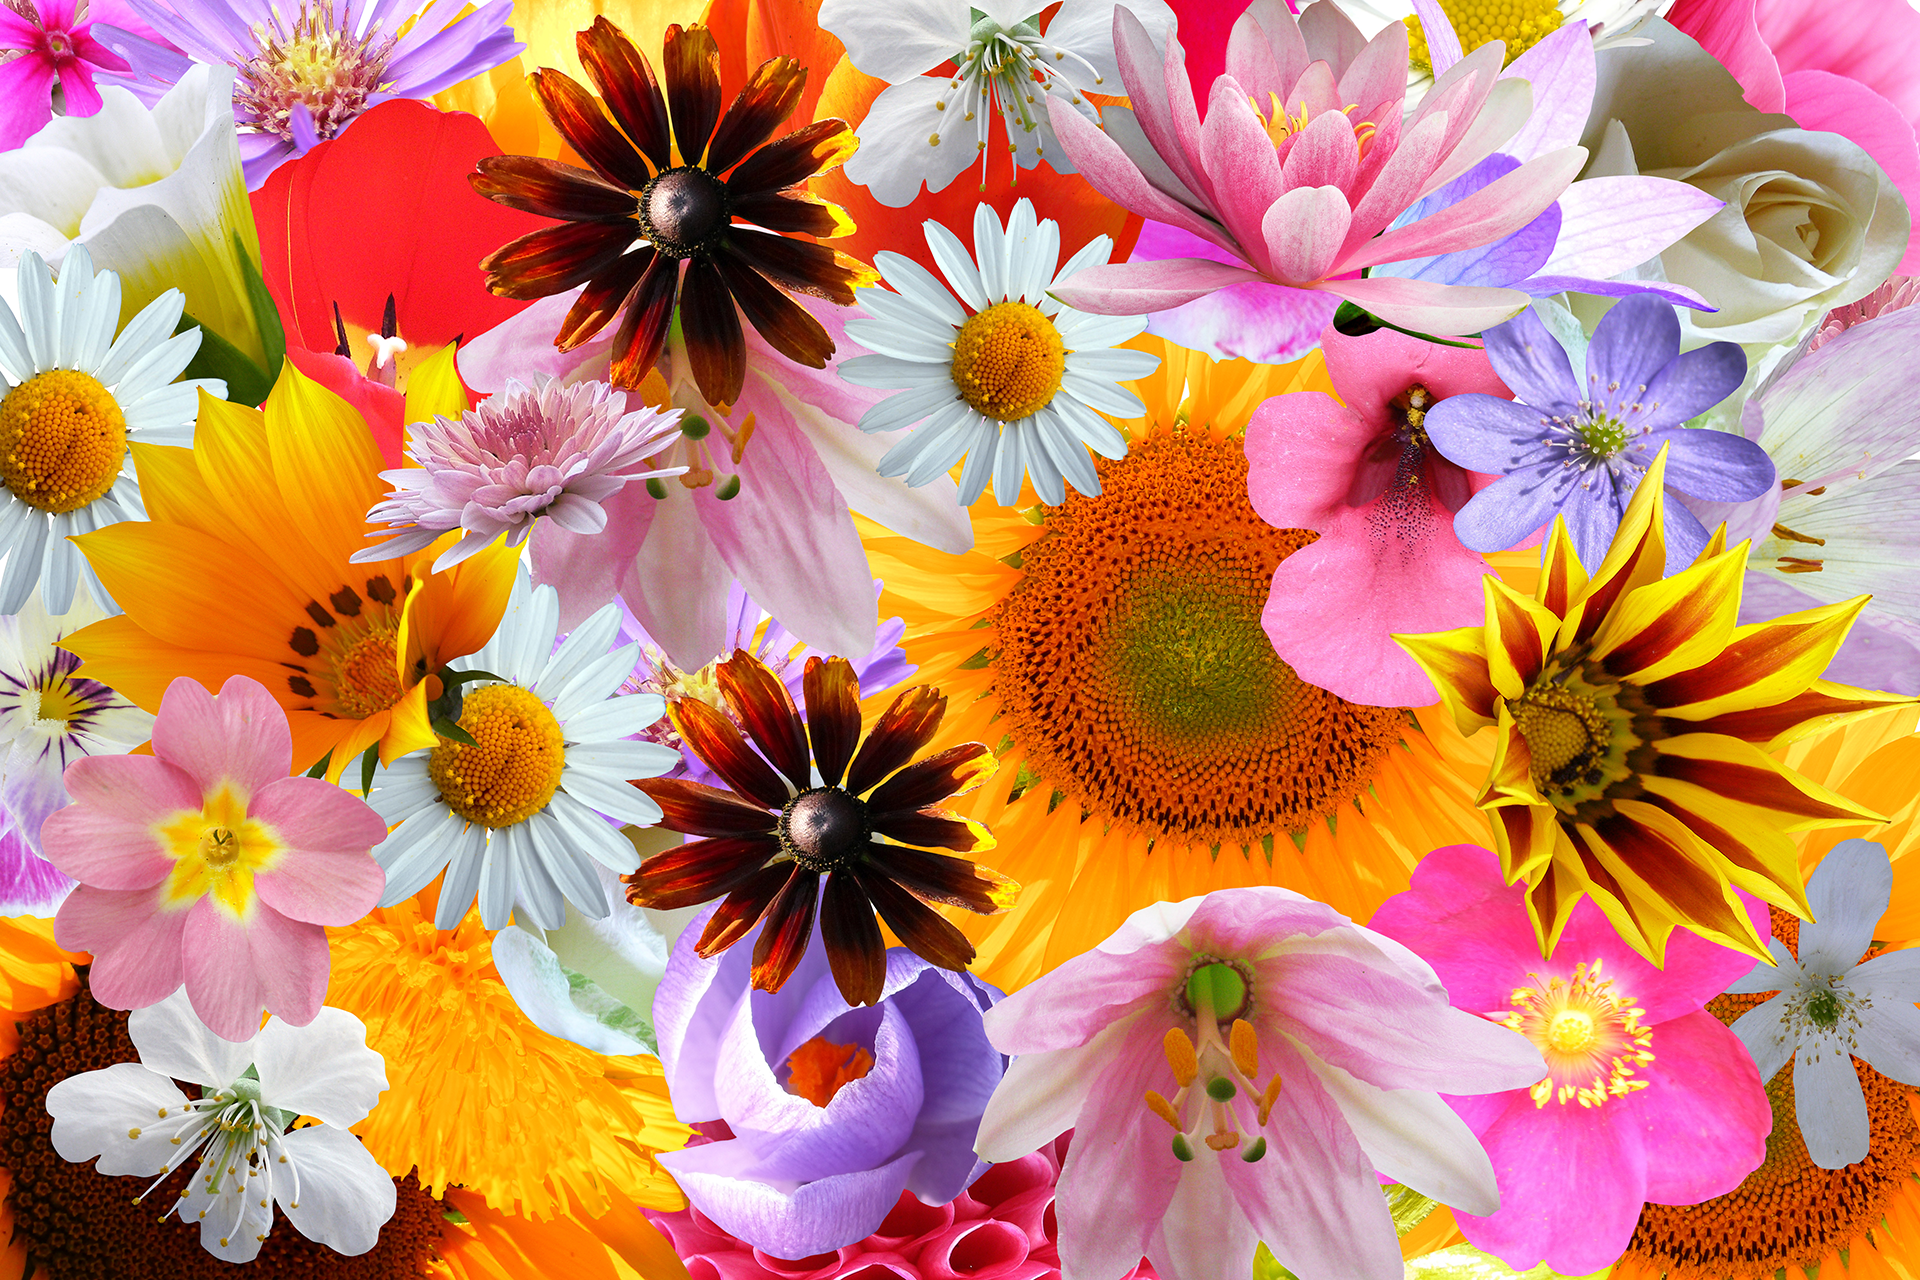 Colorful Flower Background 1 - Orange and Gold and Pink